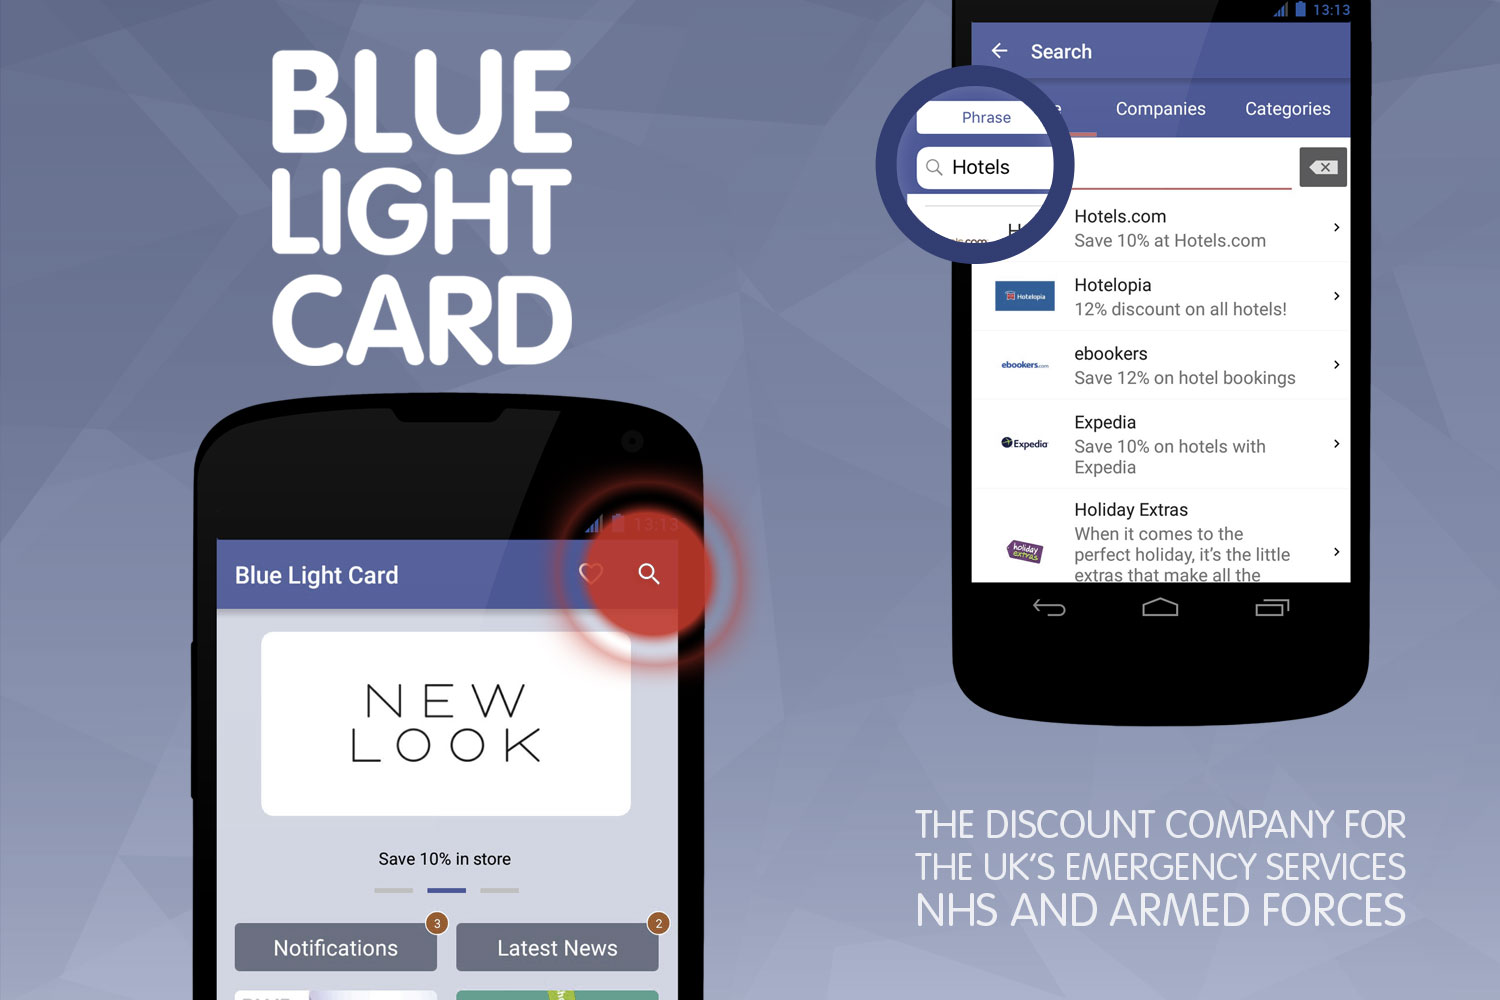 App Updates from Blue Light Card